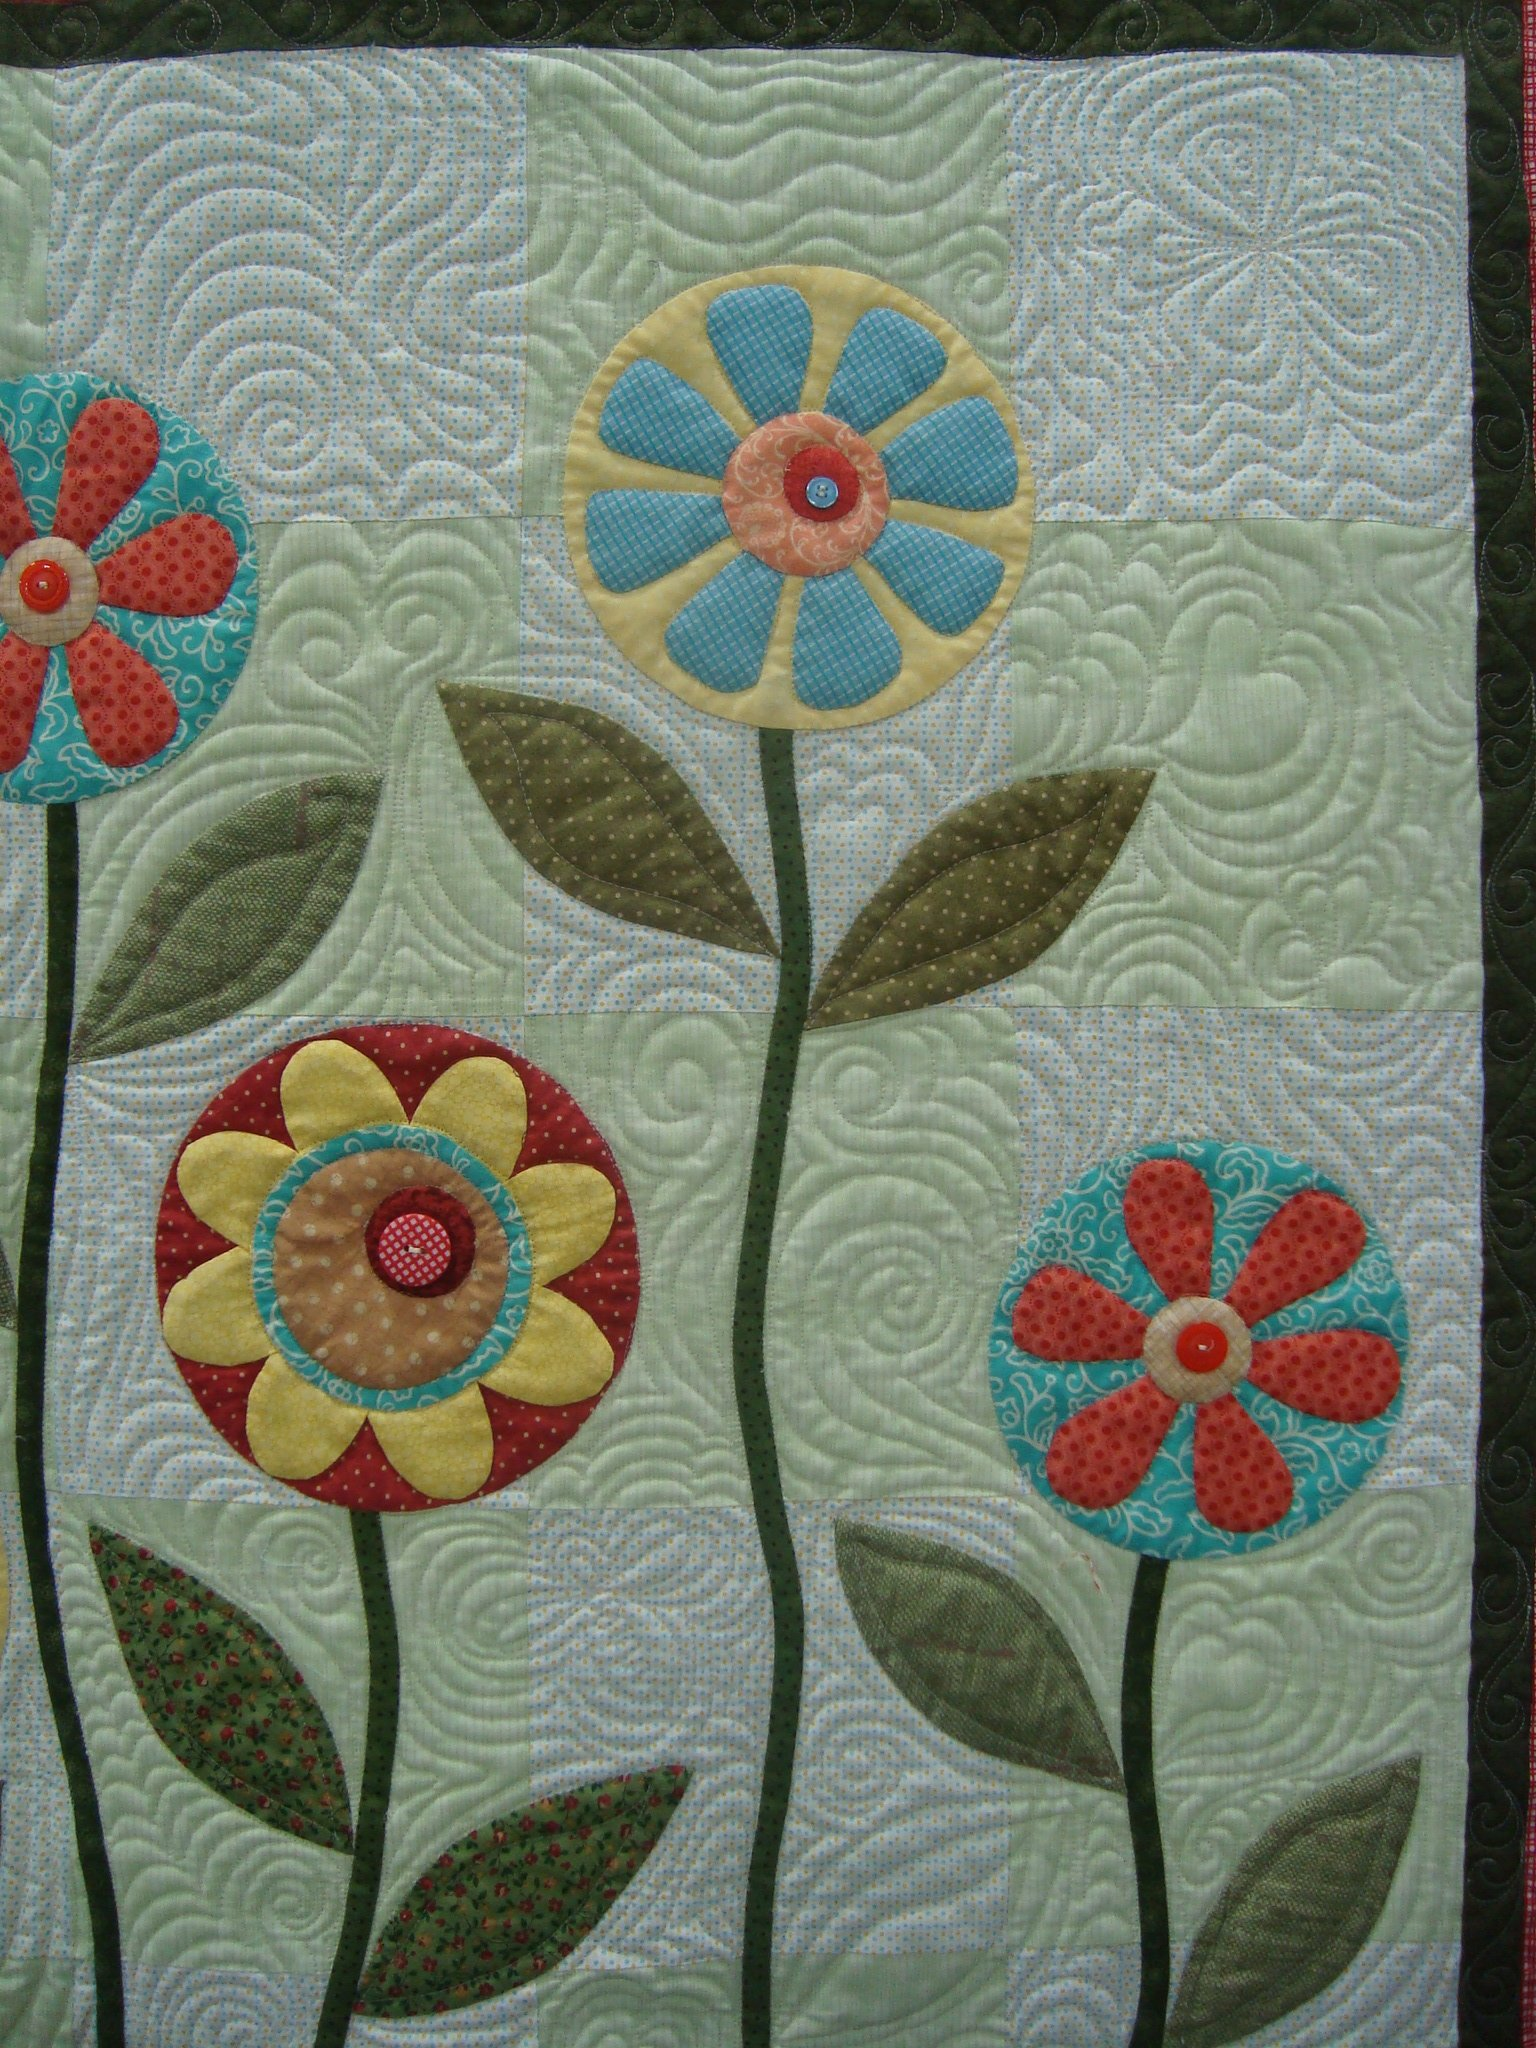 Applique Before or During Quilting?